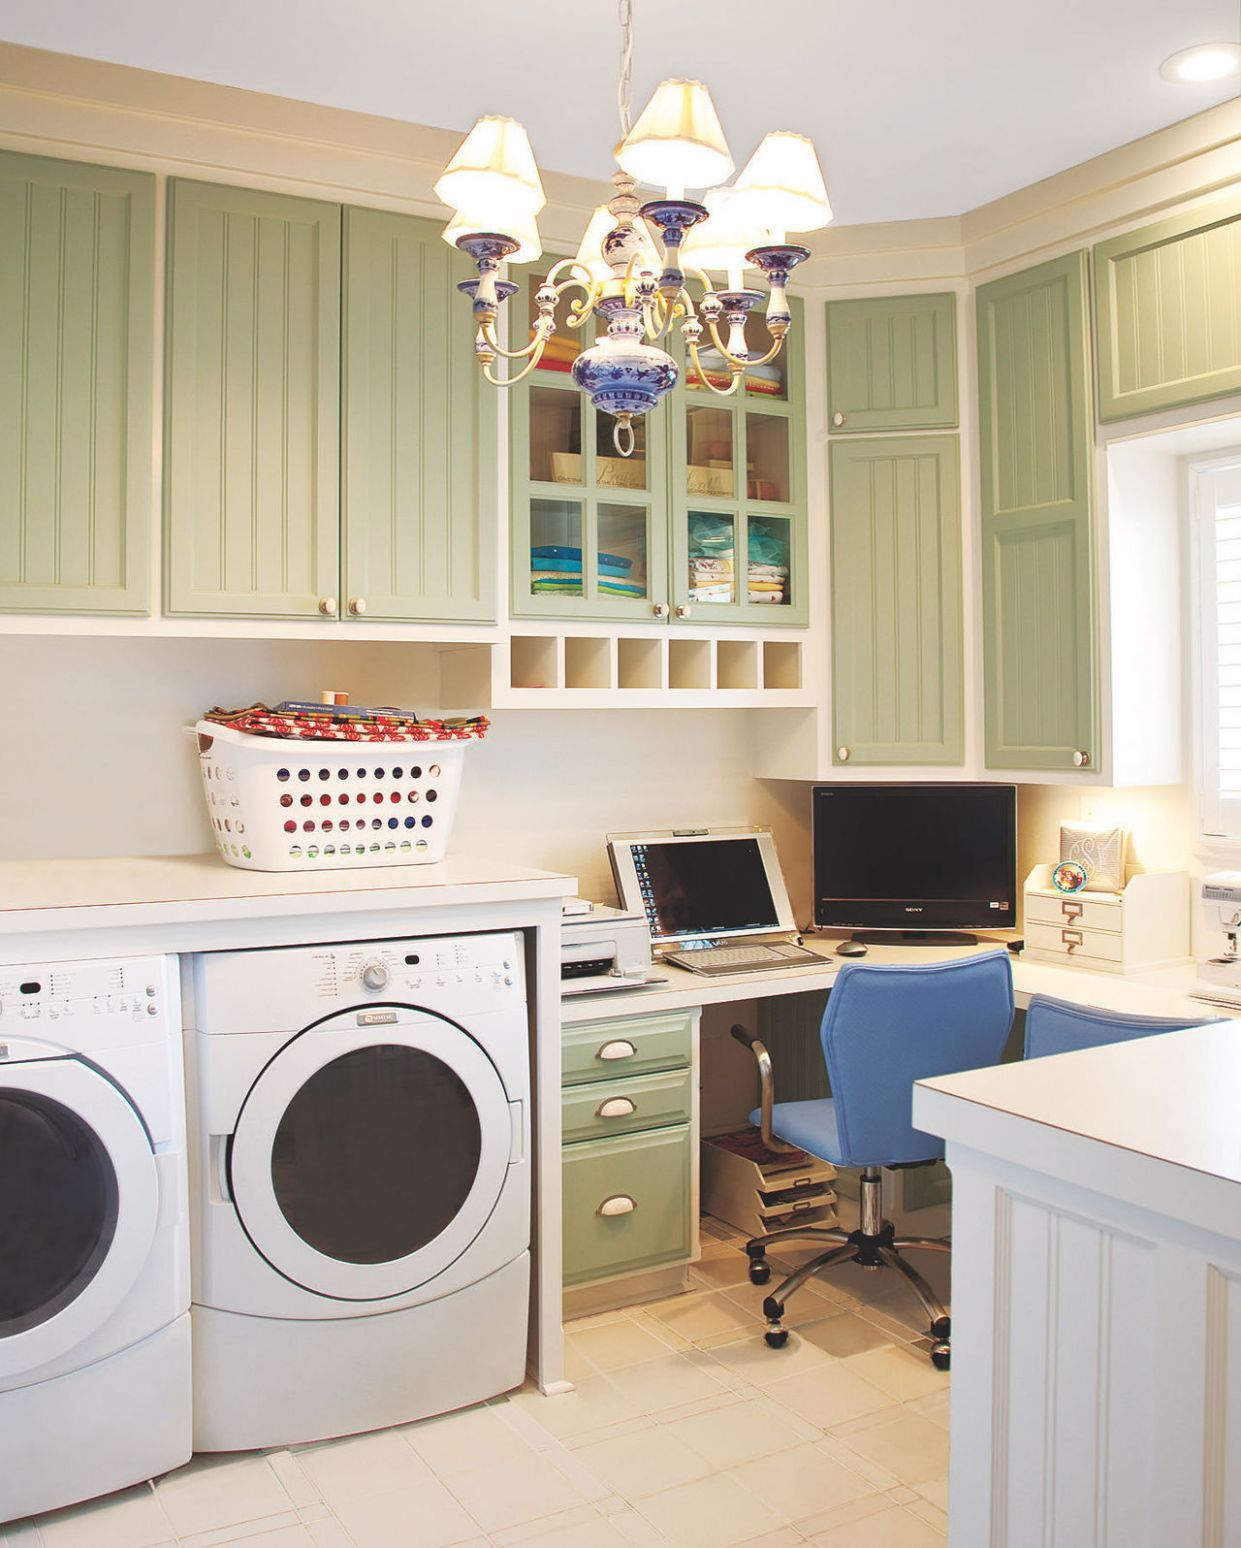 This Old House — 9 Ideas for a Fully Loaded Laundry Room Efficient..